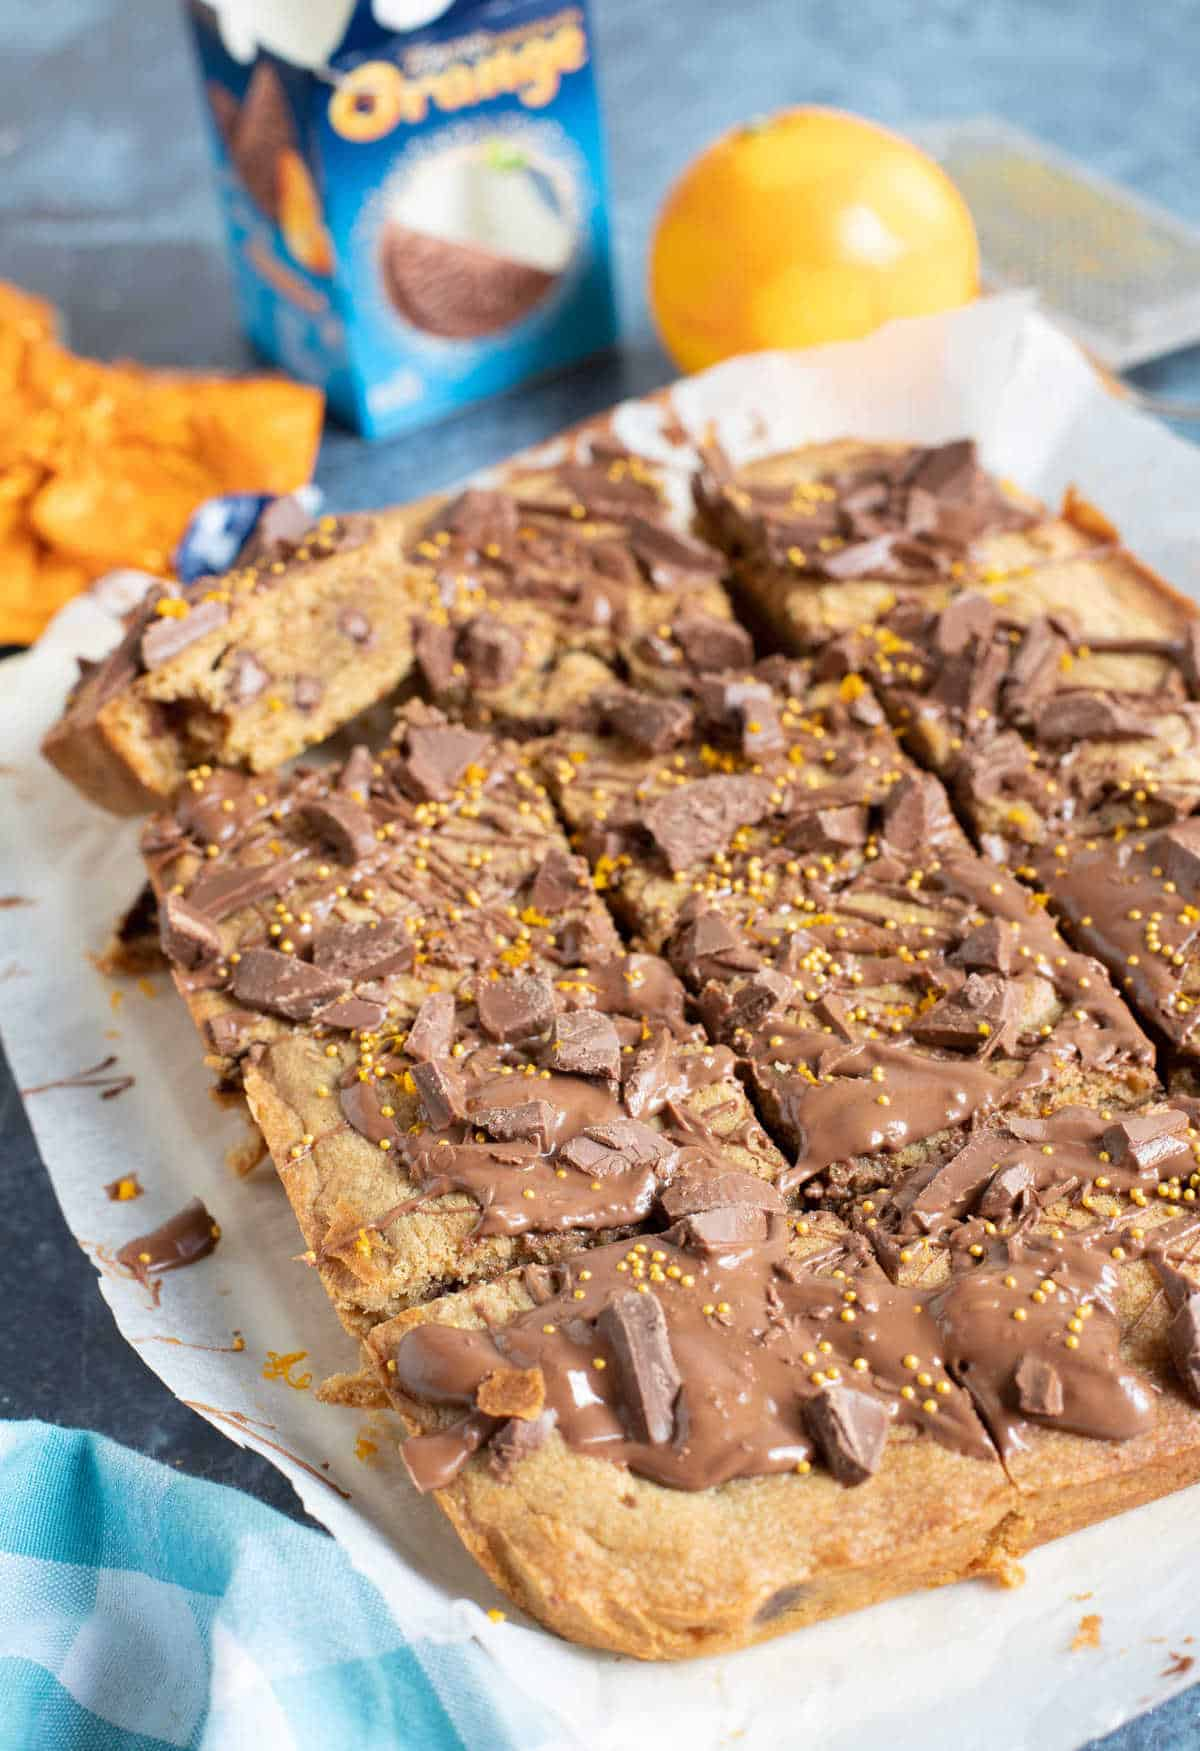 Chocolate orange cookie bars cut into squares on a board.